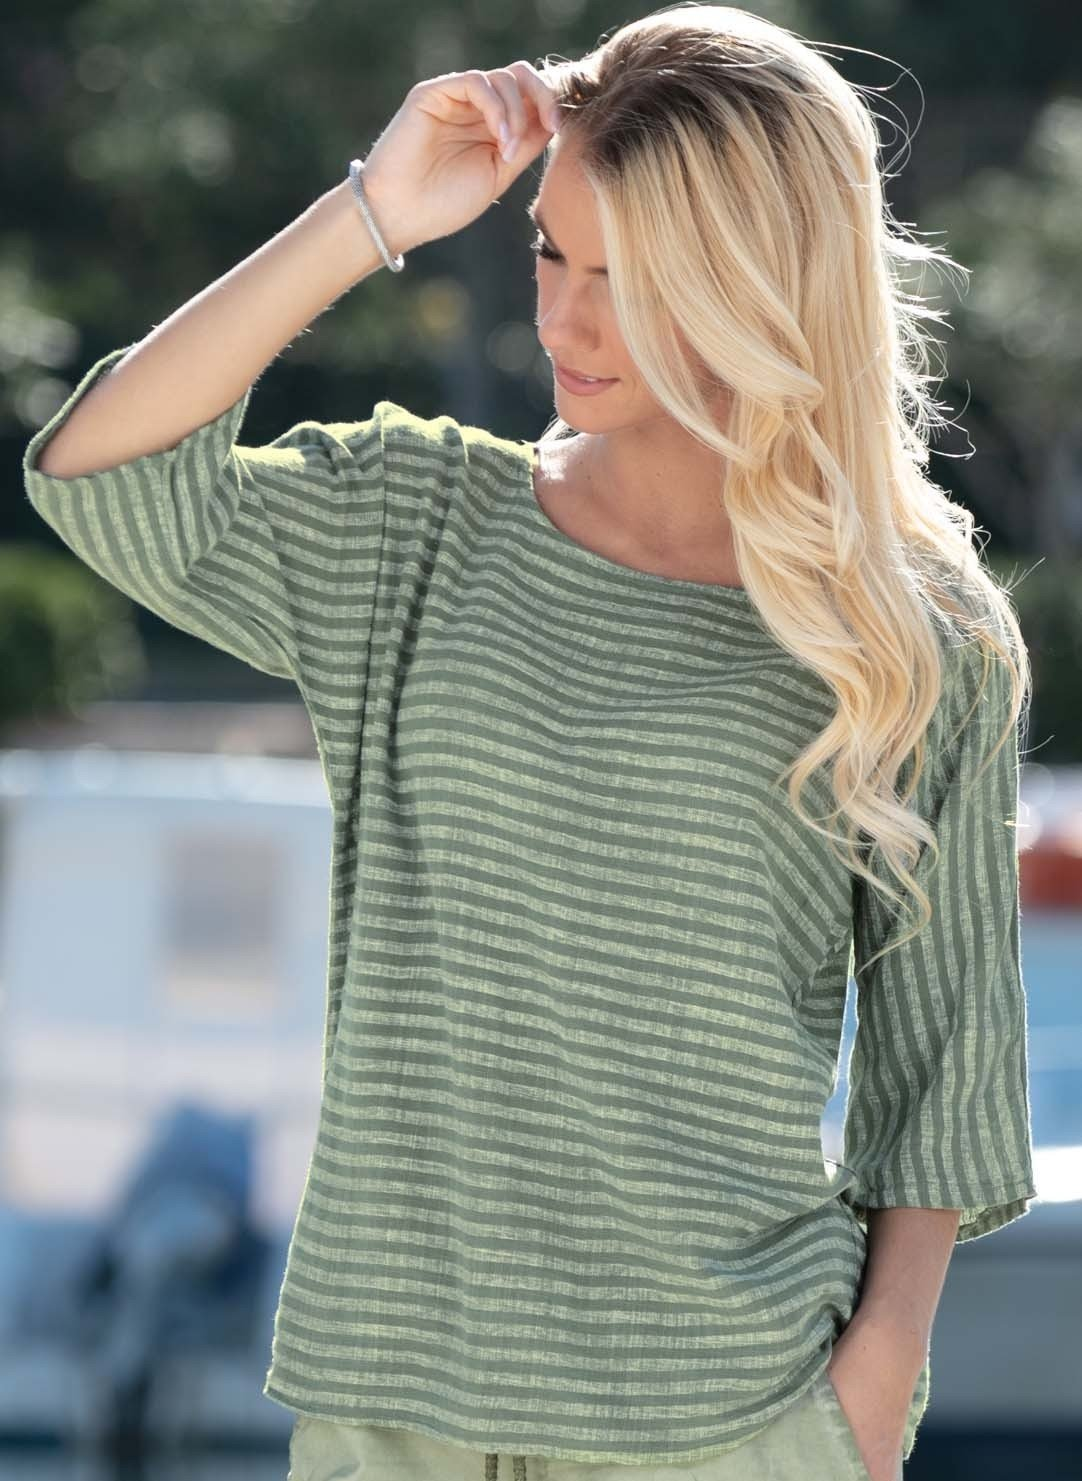 D-3/4 Arm-Shirt,Blockstr.olive L 086